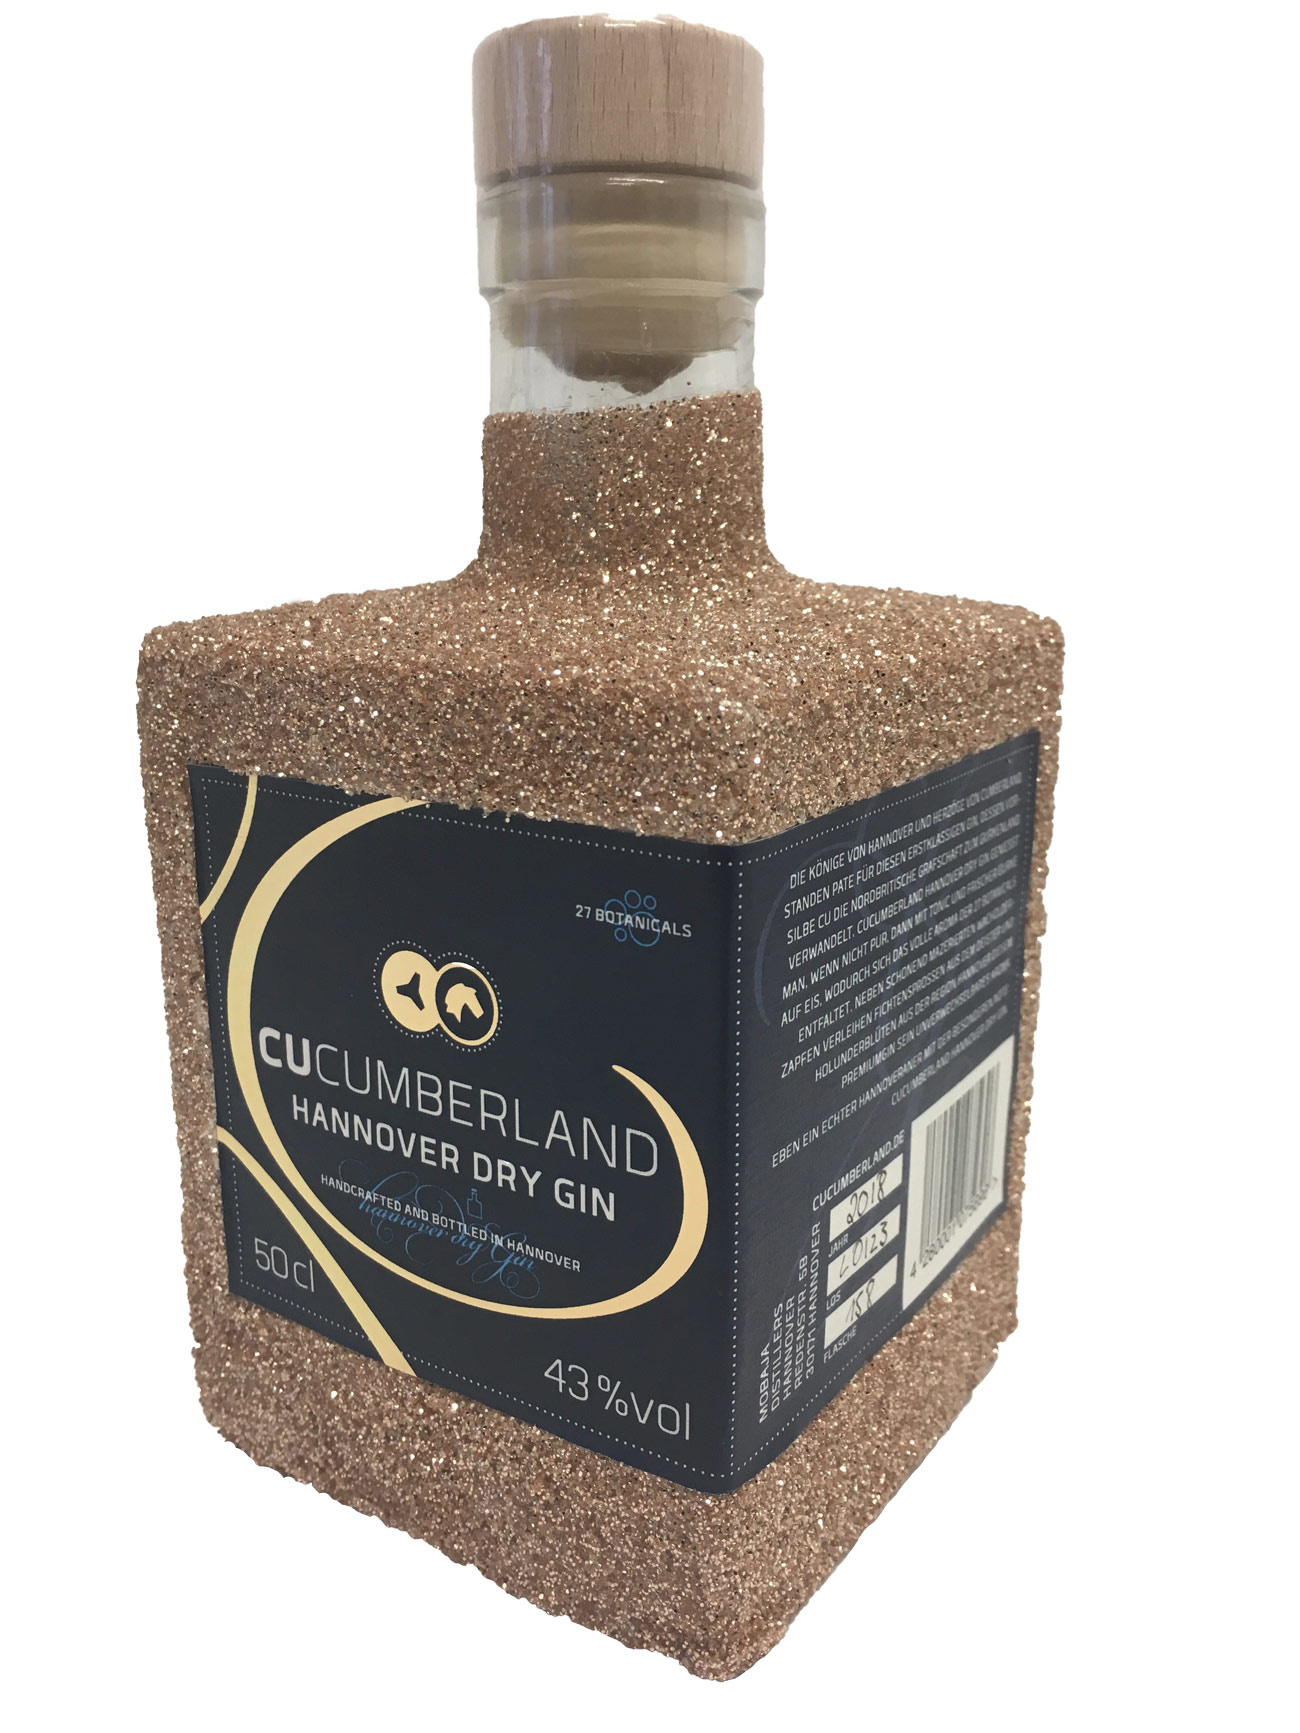 Gin Cucumberland Hannover Dry Gin (0,5L)